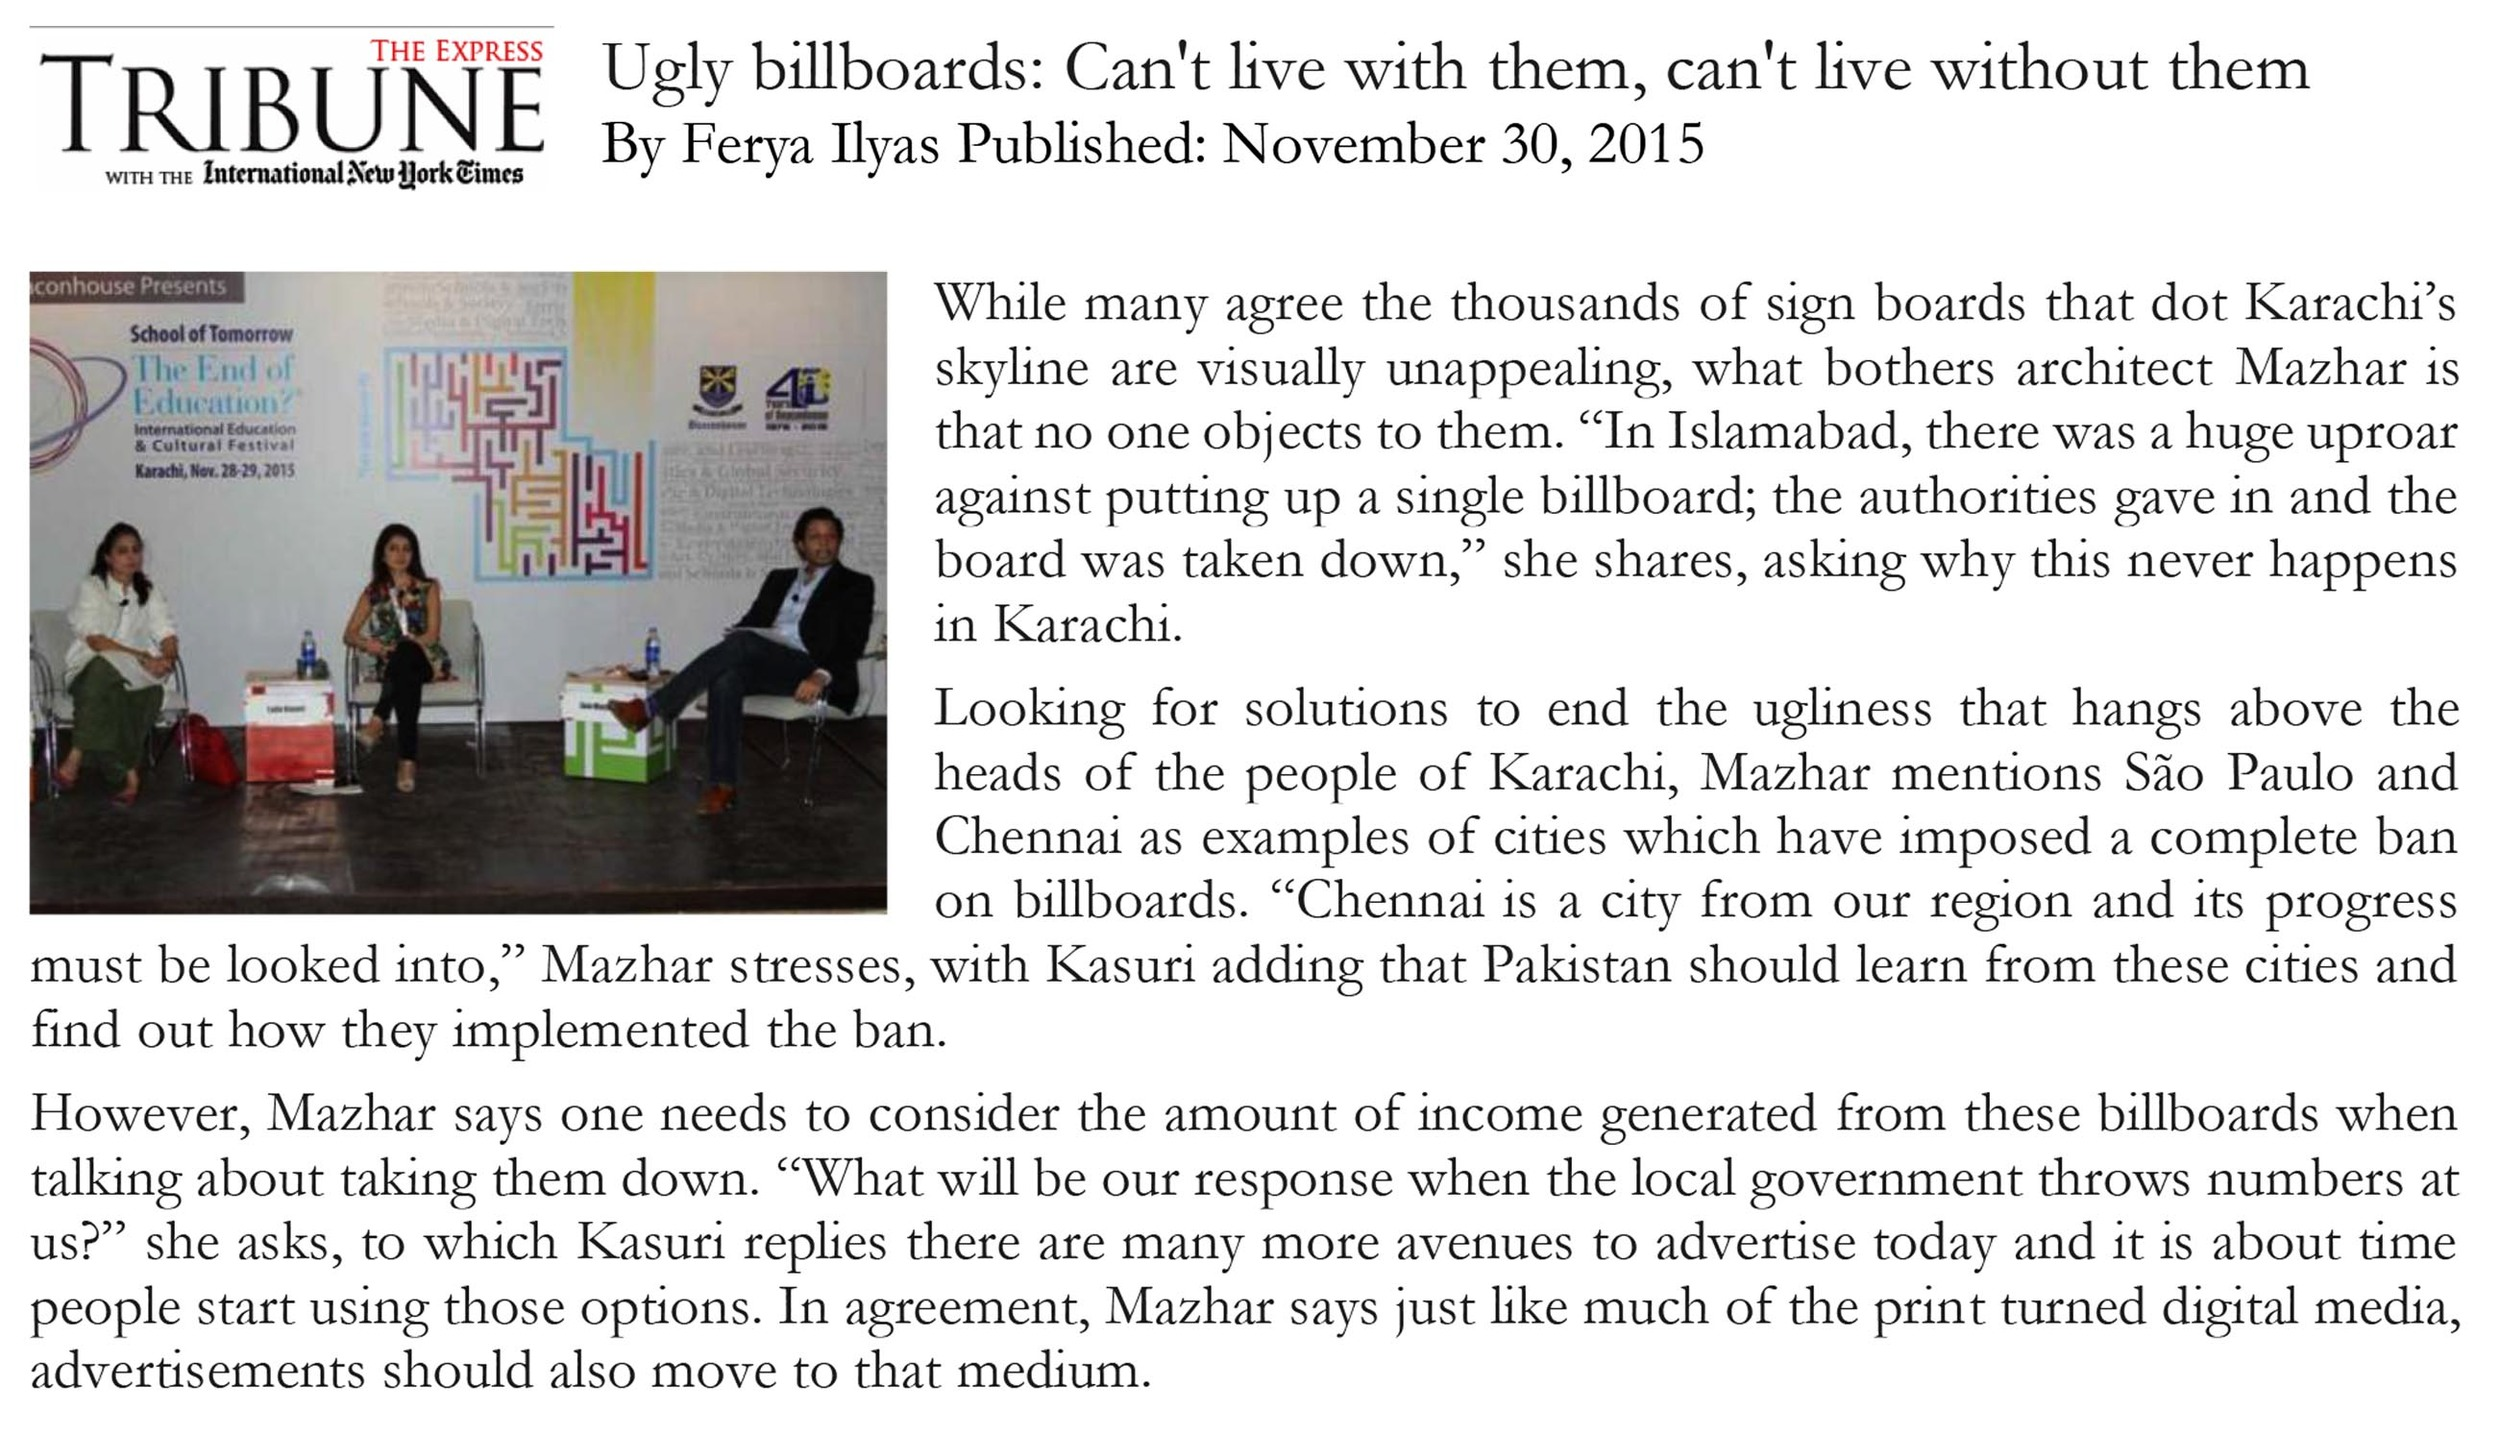 Ugly Billboards: Can't live with them, can't live without them by Ferya Ilyas. Published in Express Tribune on November, 30th 2015